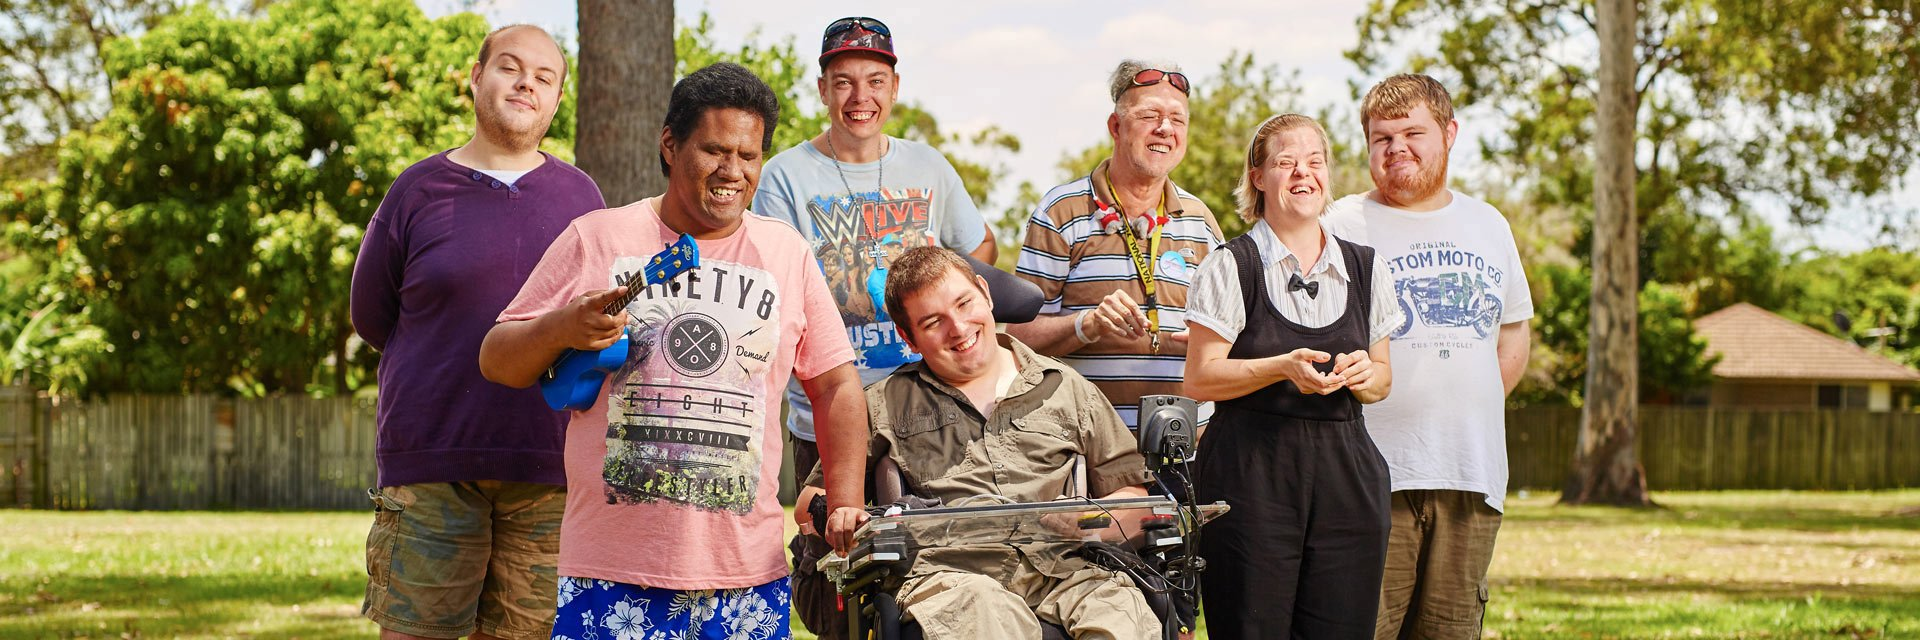 Group of people with different types of physical disabilities